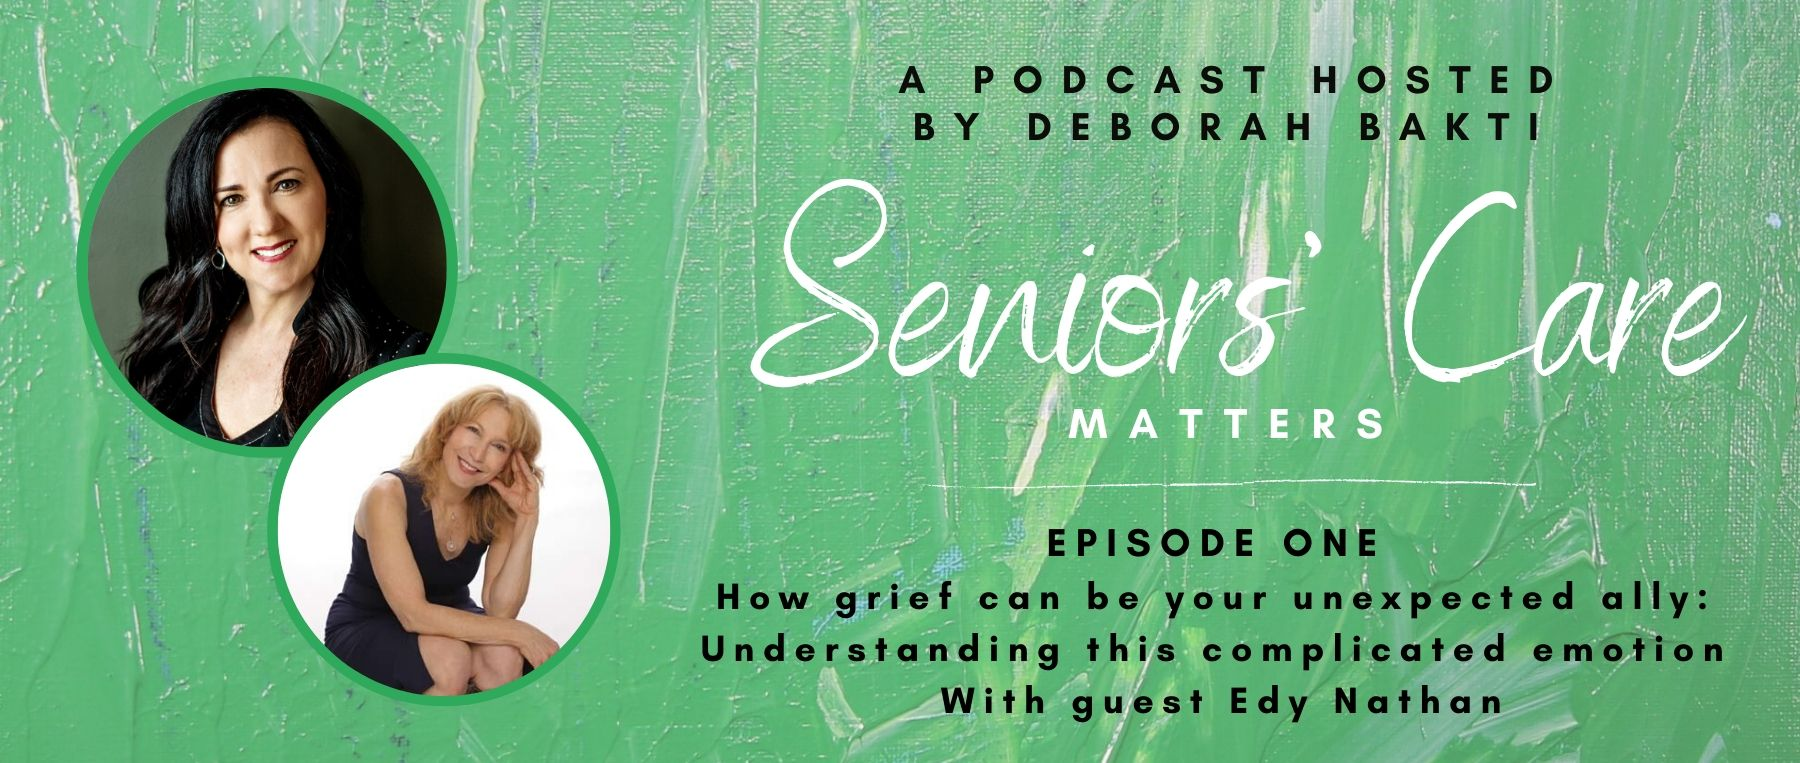 Understand different types of grief and how they can be leveraged to break through emotional barriers.